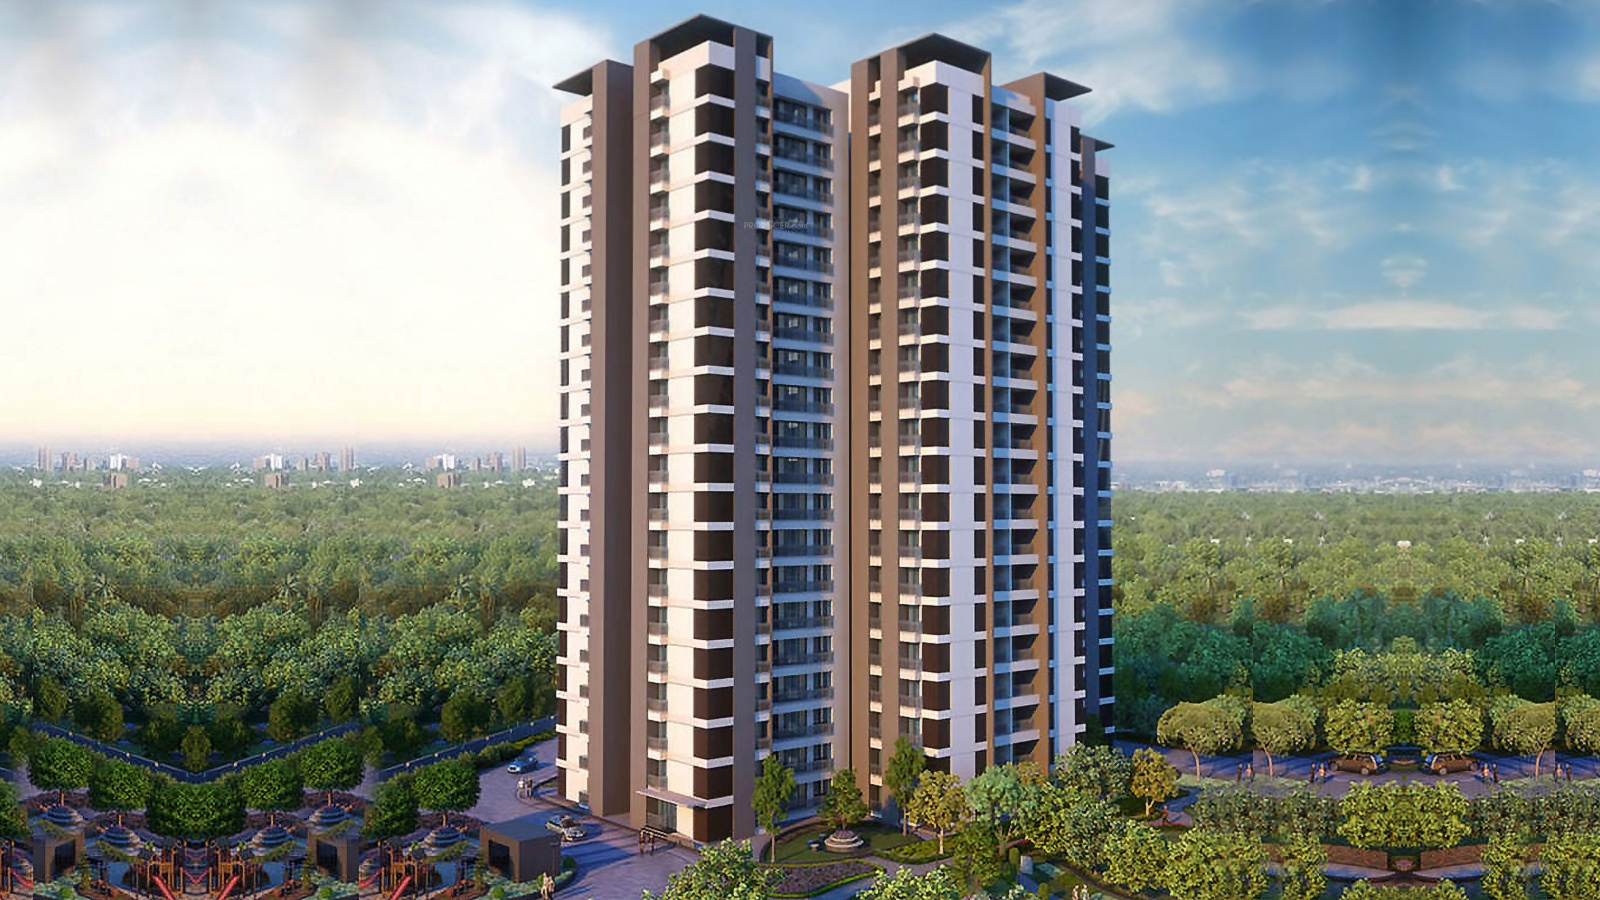 1762 sq ft 3 BHK 3T Apartment for Sale in Alembic Urban Forest